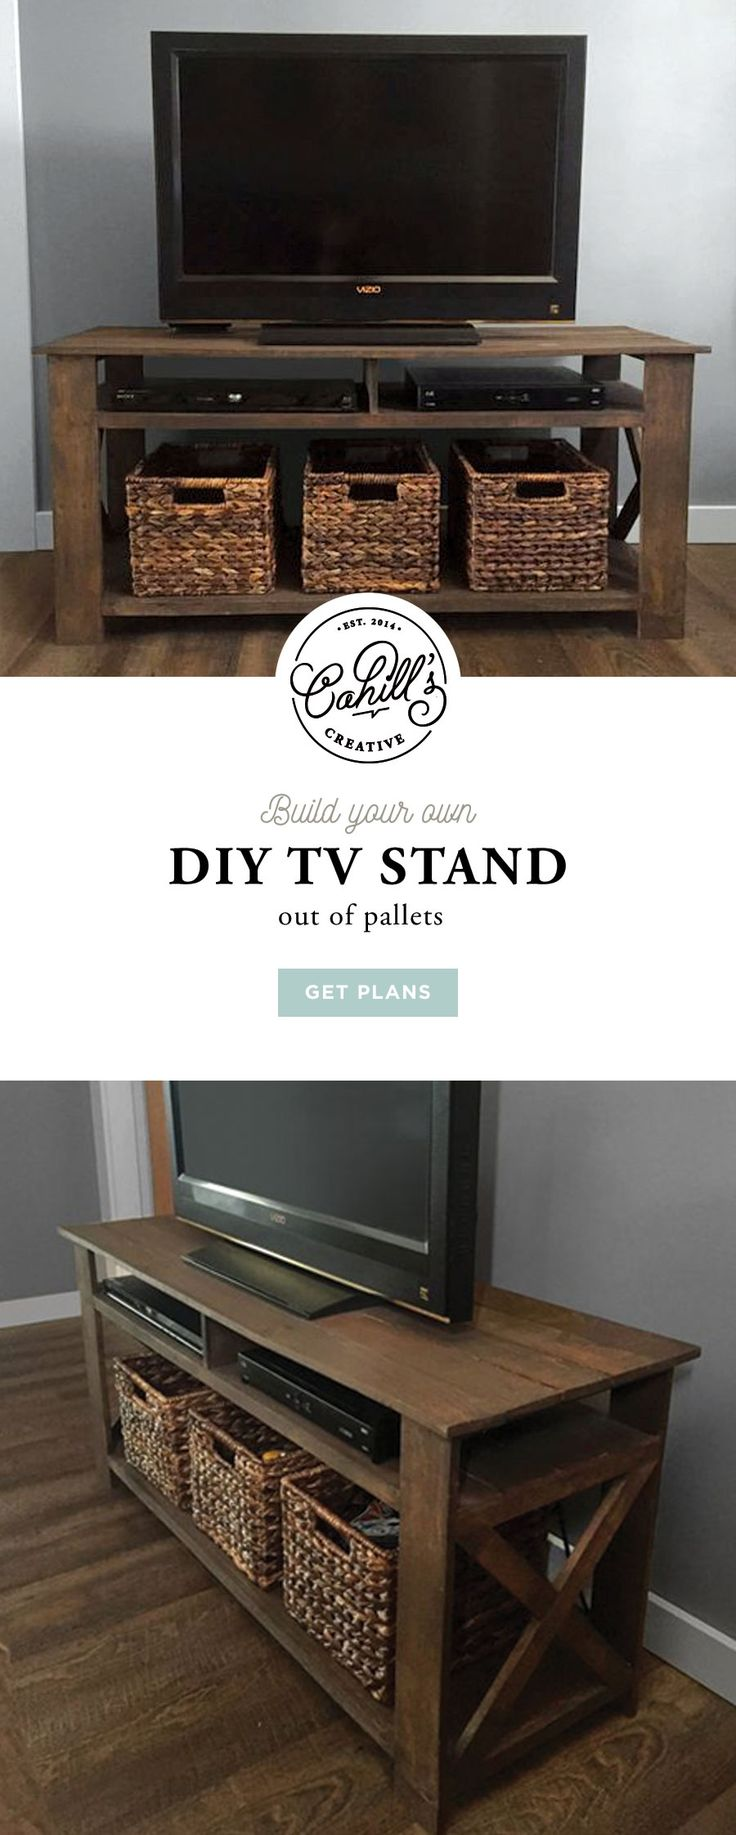 Build your own DIY Tv Stand out of pallets. Visit Etsy for the plans https://www.etsy.com/listing/270690202/rustic-pallet-tv-stand-plans #diy #doityourself #palletfurniture #tvstand